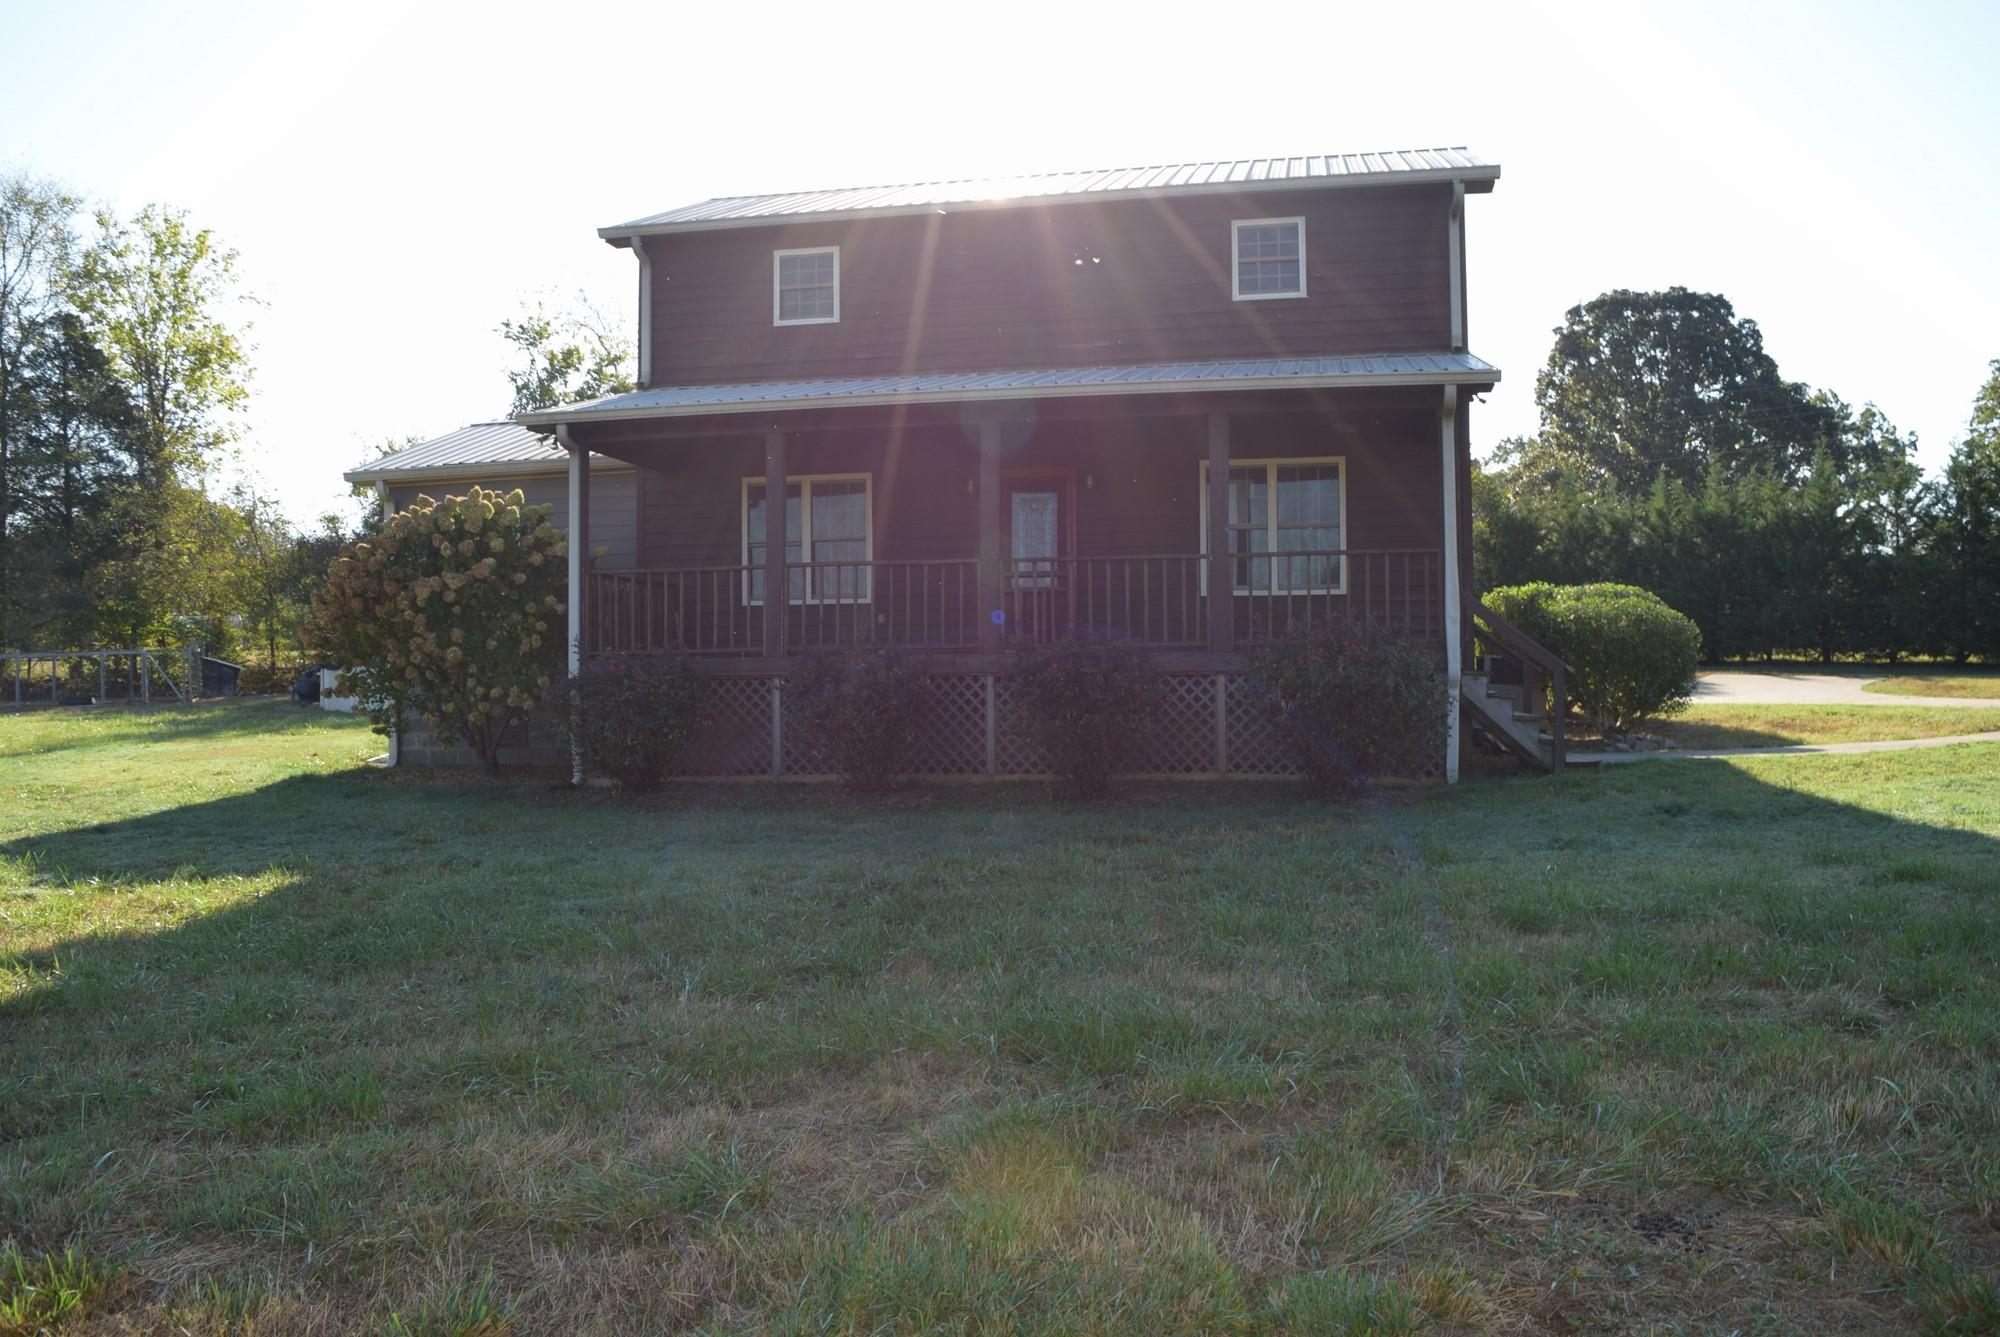 606 Cooley Ford Rd, Tennessee Ridge, TN 37178 - Tennessee Ridge, TN real estate listing